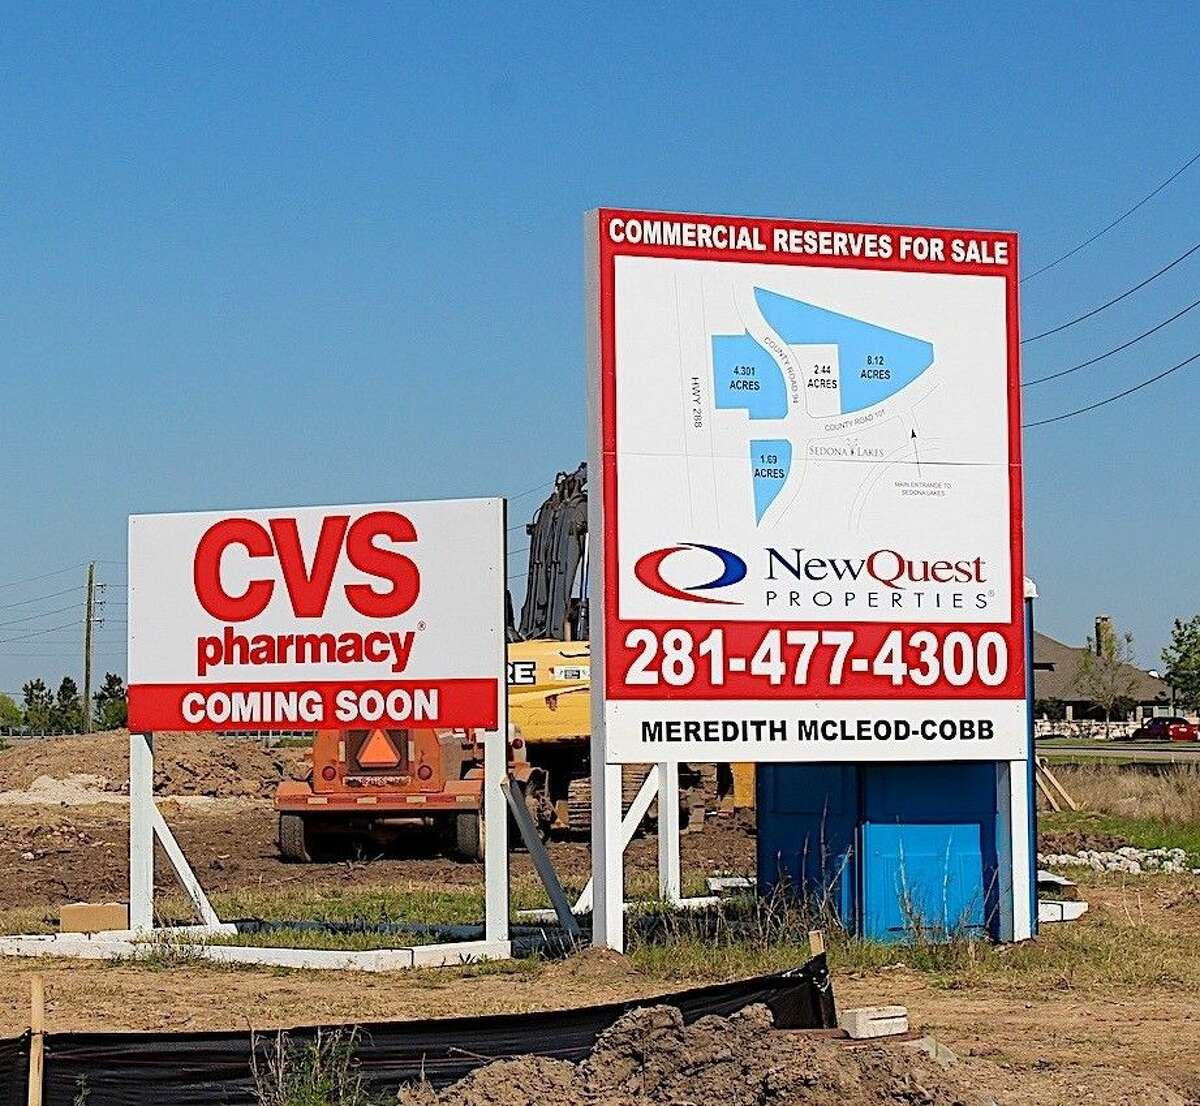 The site of the new CVS, which is slated to open in September.